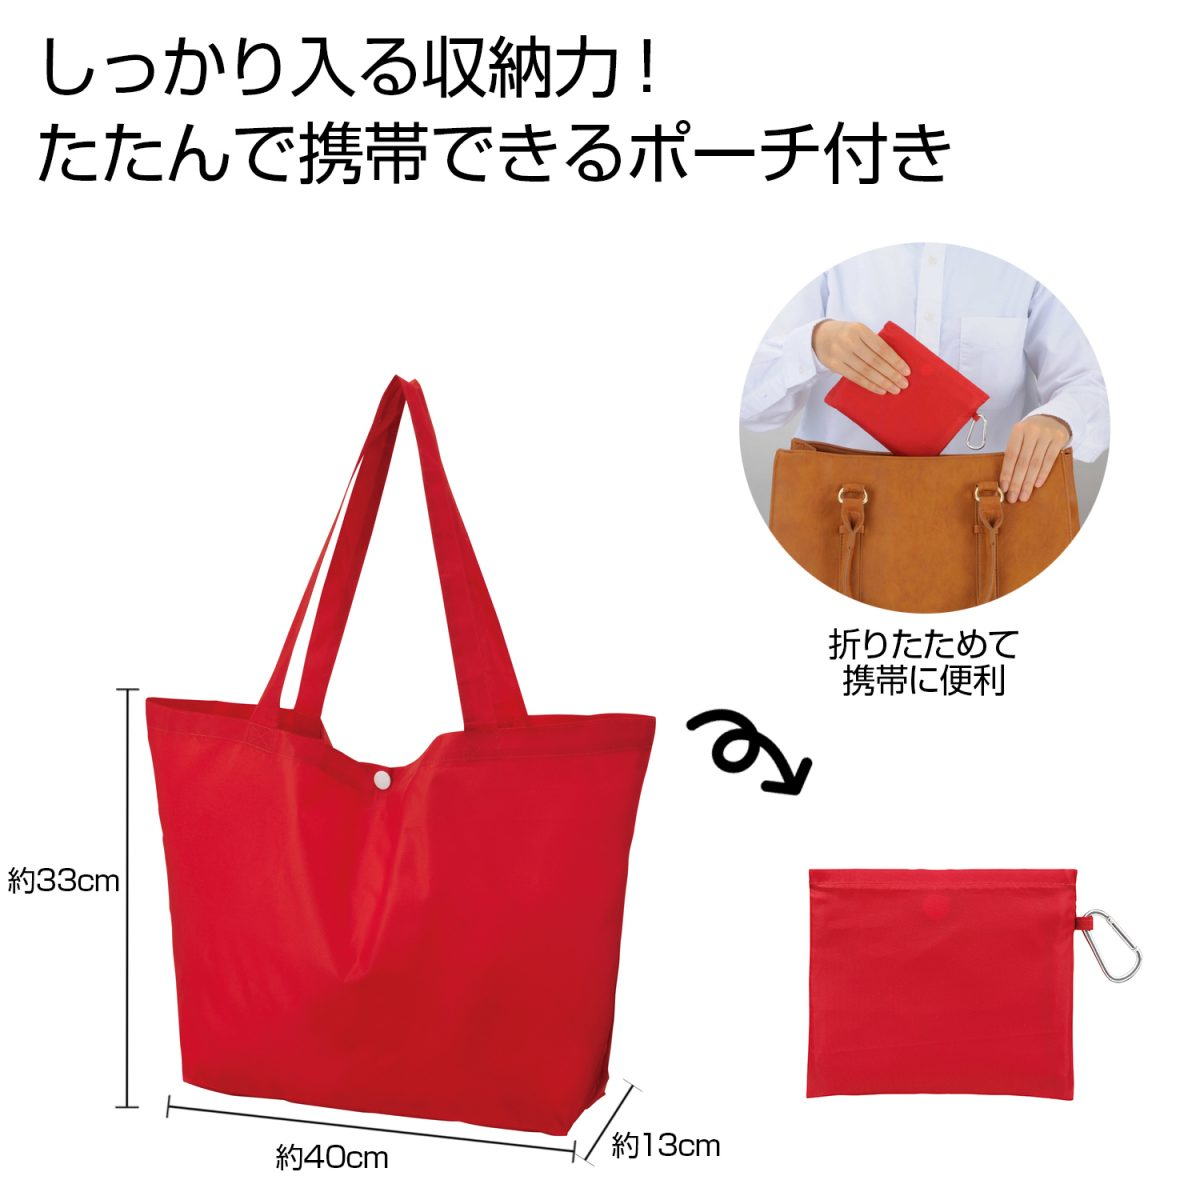 Ecolor 折りたたみビッグバッグ(レッド)